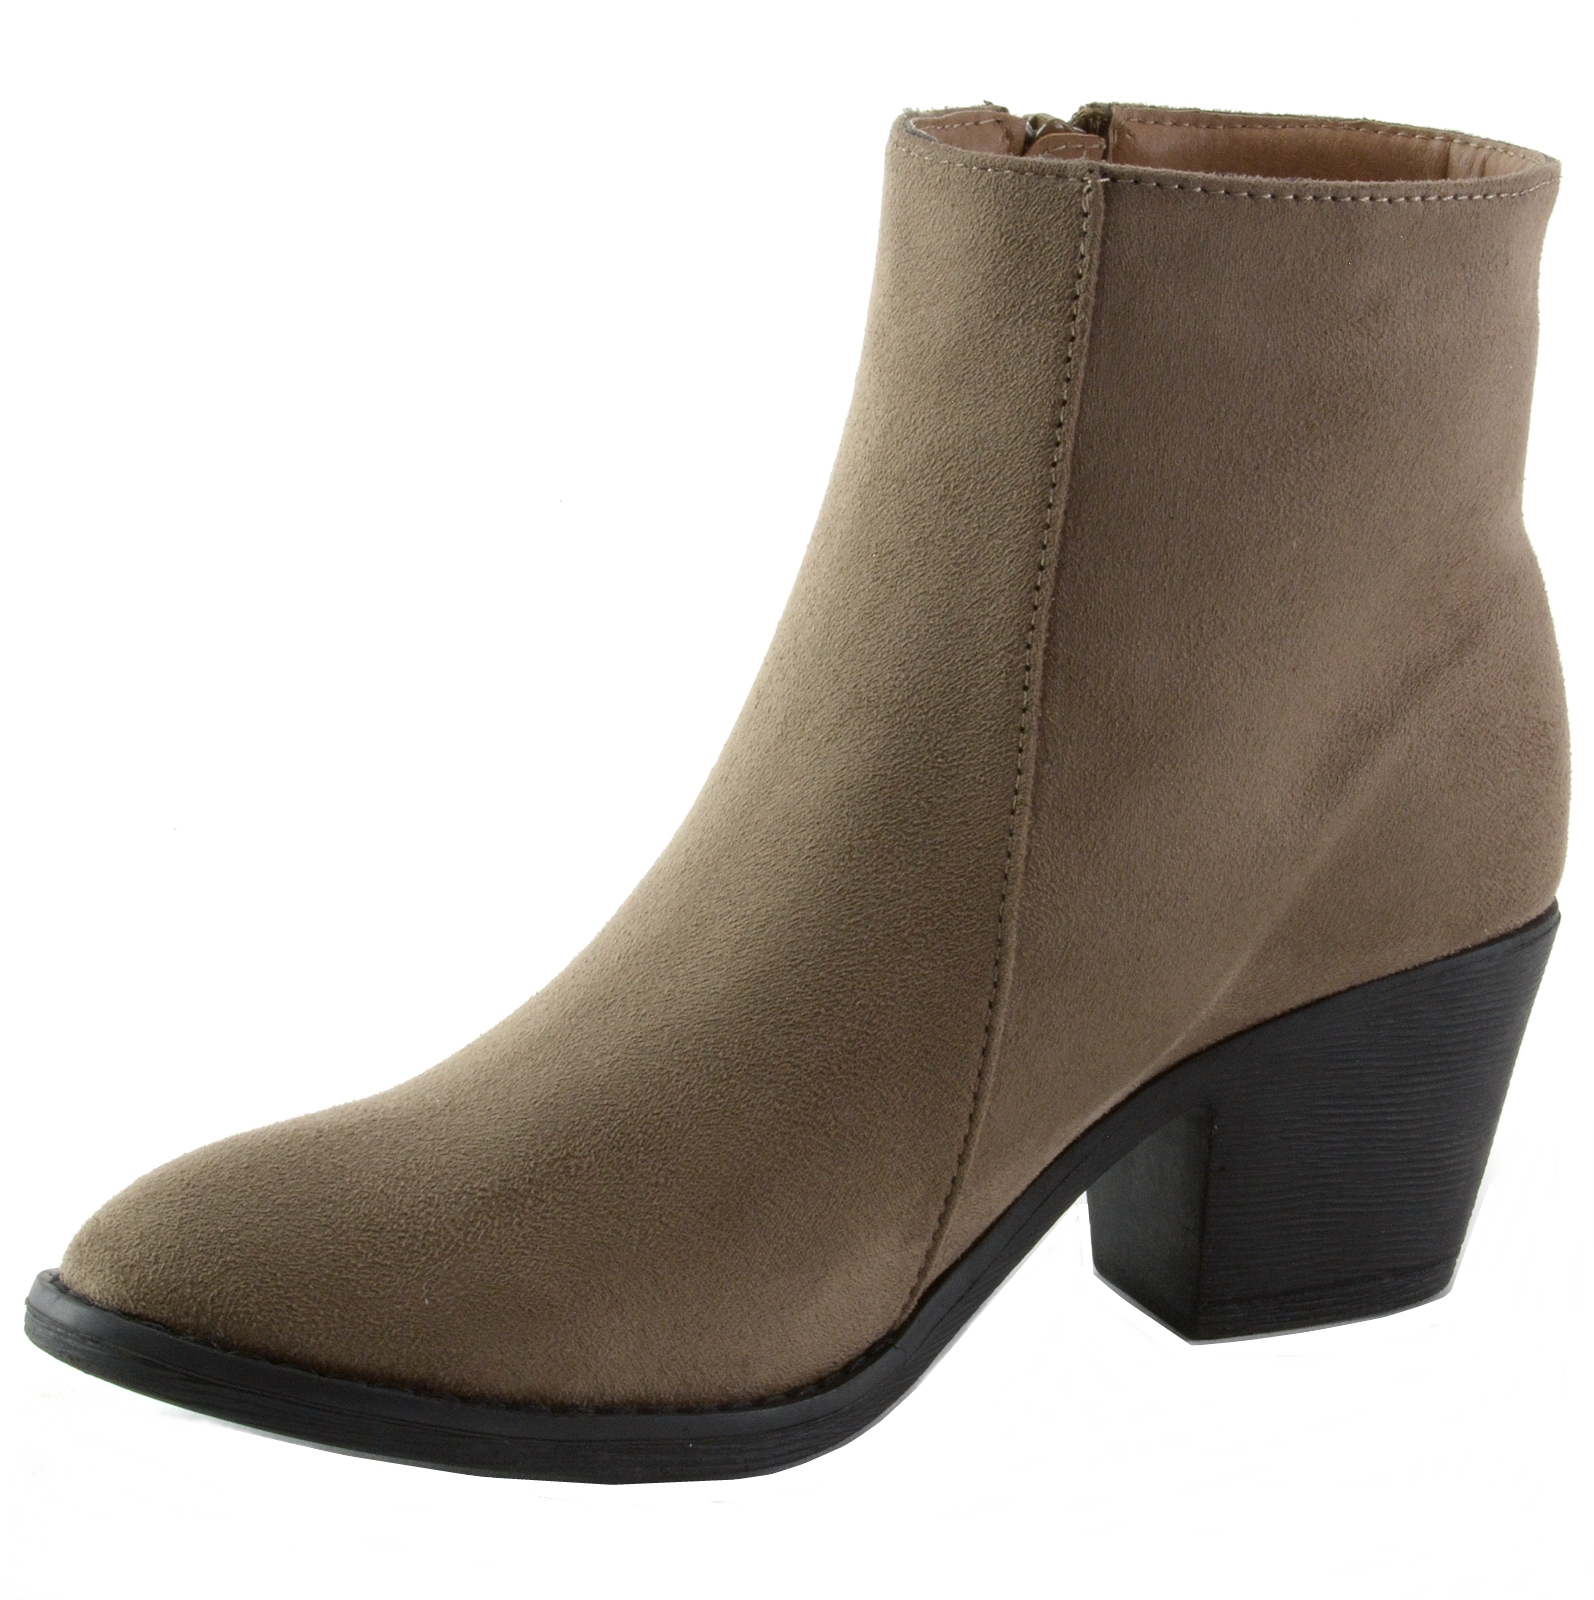 Alpine-Swiss-Arosa-Womens-Ankle-Boots-Fringe-Shoes-Block-High-Heel-Micro-Suede thumbnail 19